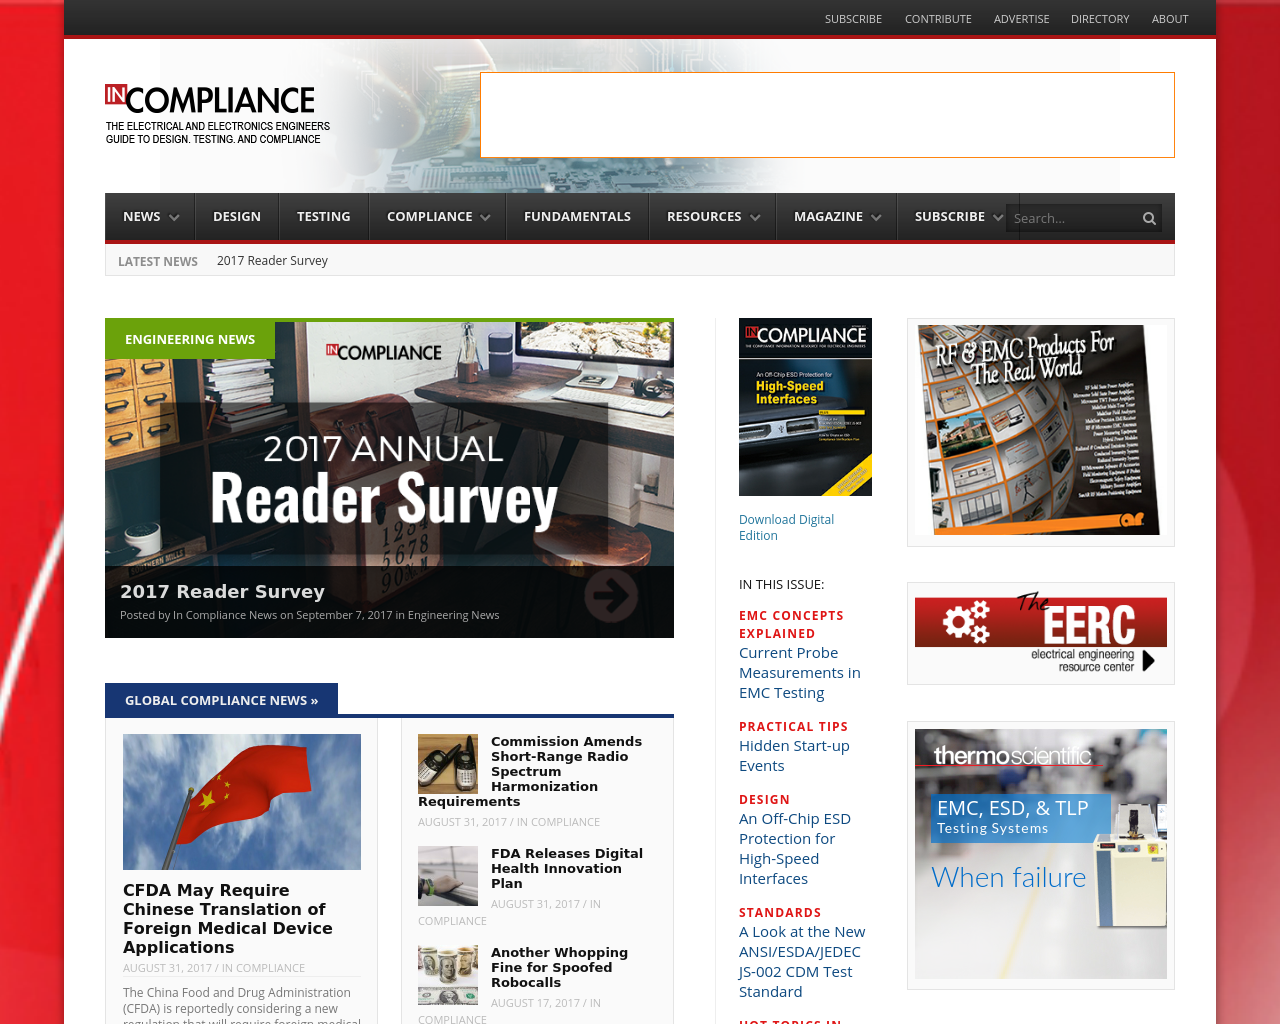 In-Compliance-Magazine-Advertising-Reviews-Pricing